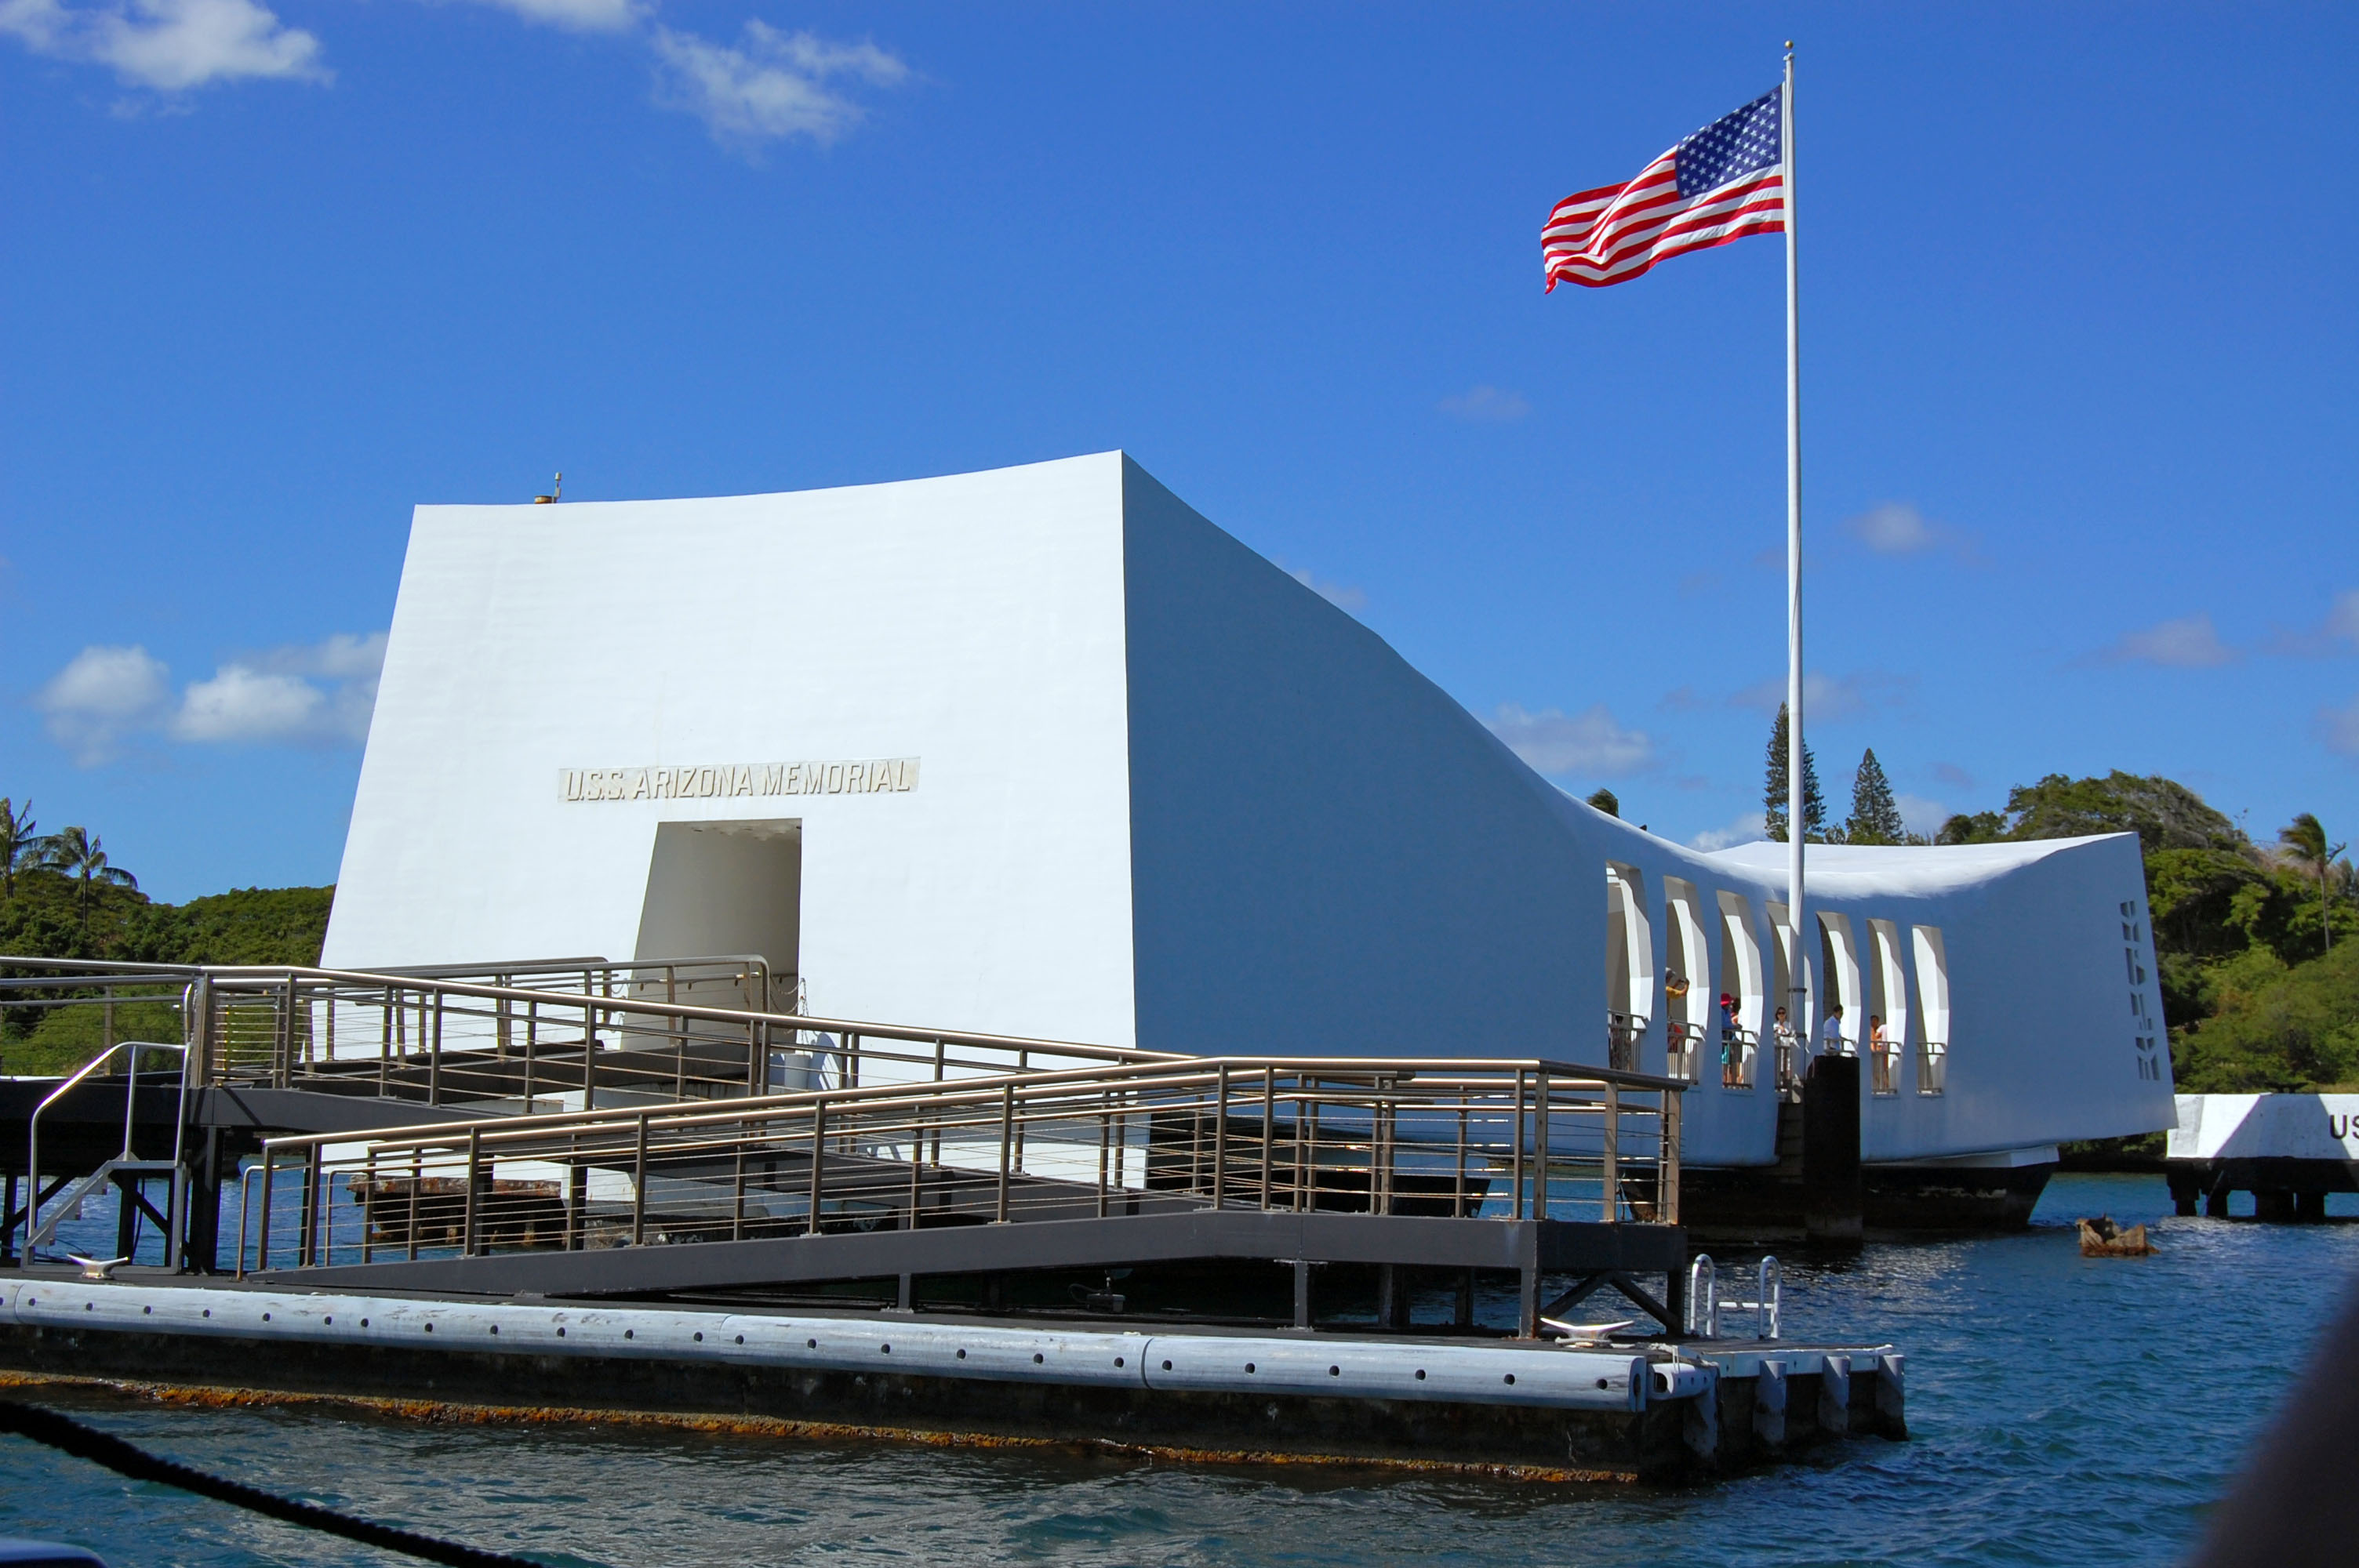 File:USS Arizona Memorial from the tour boat.JPG - Wikimedia Commons